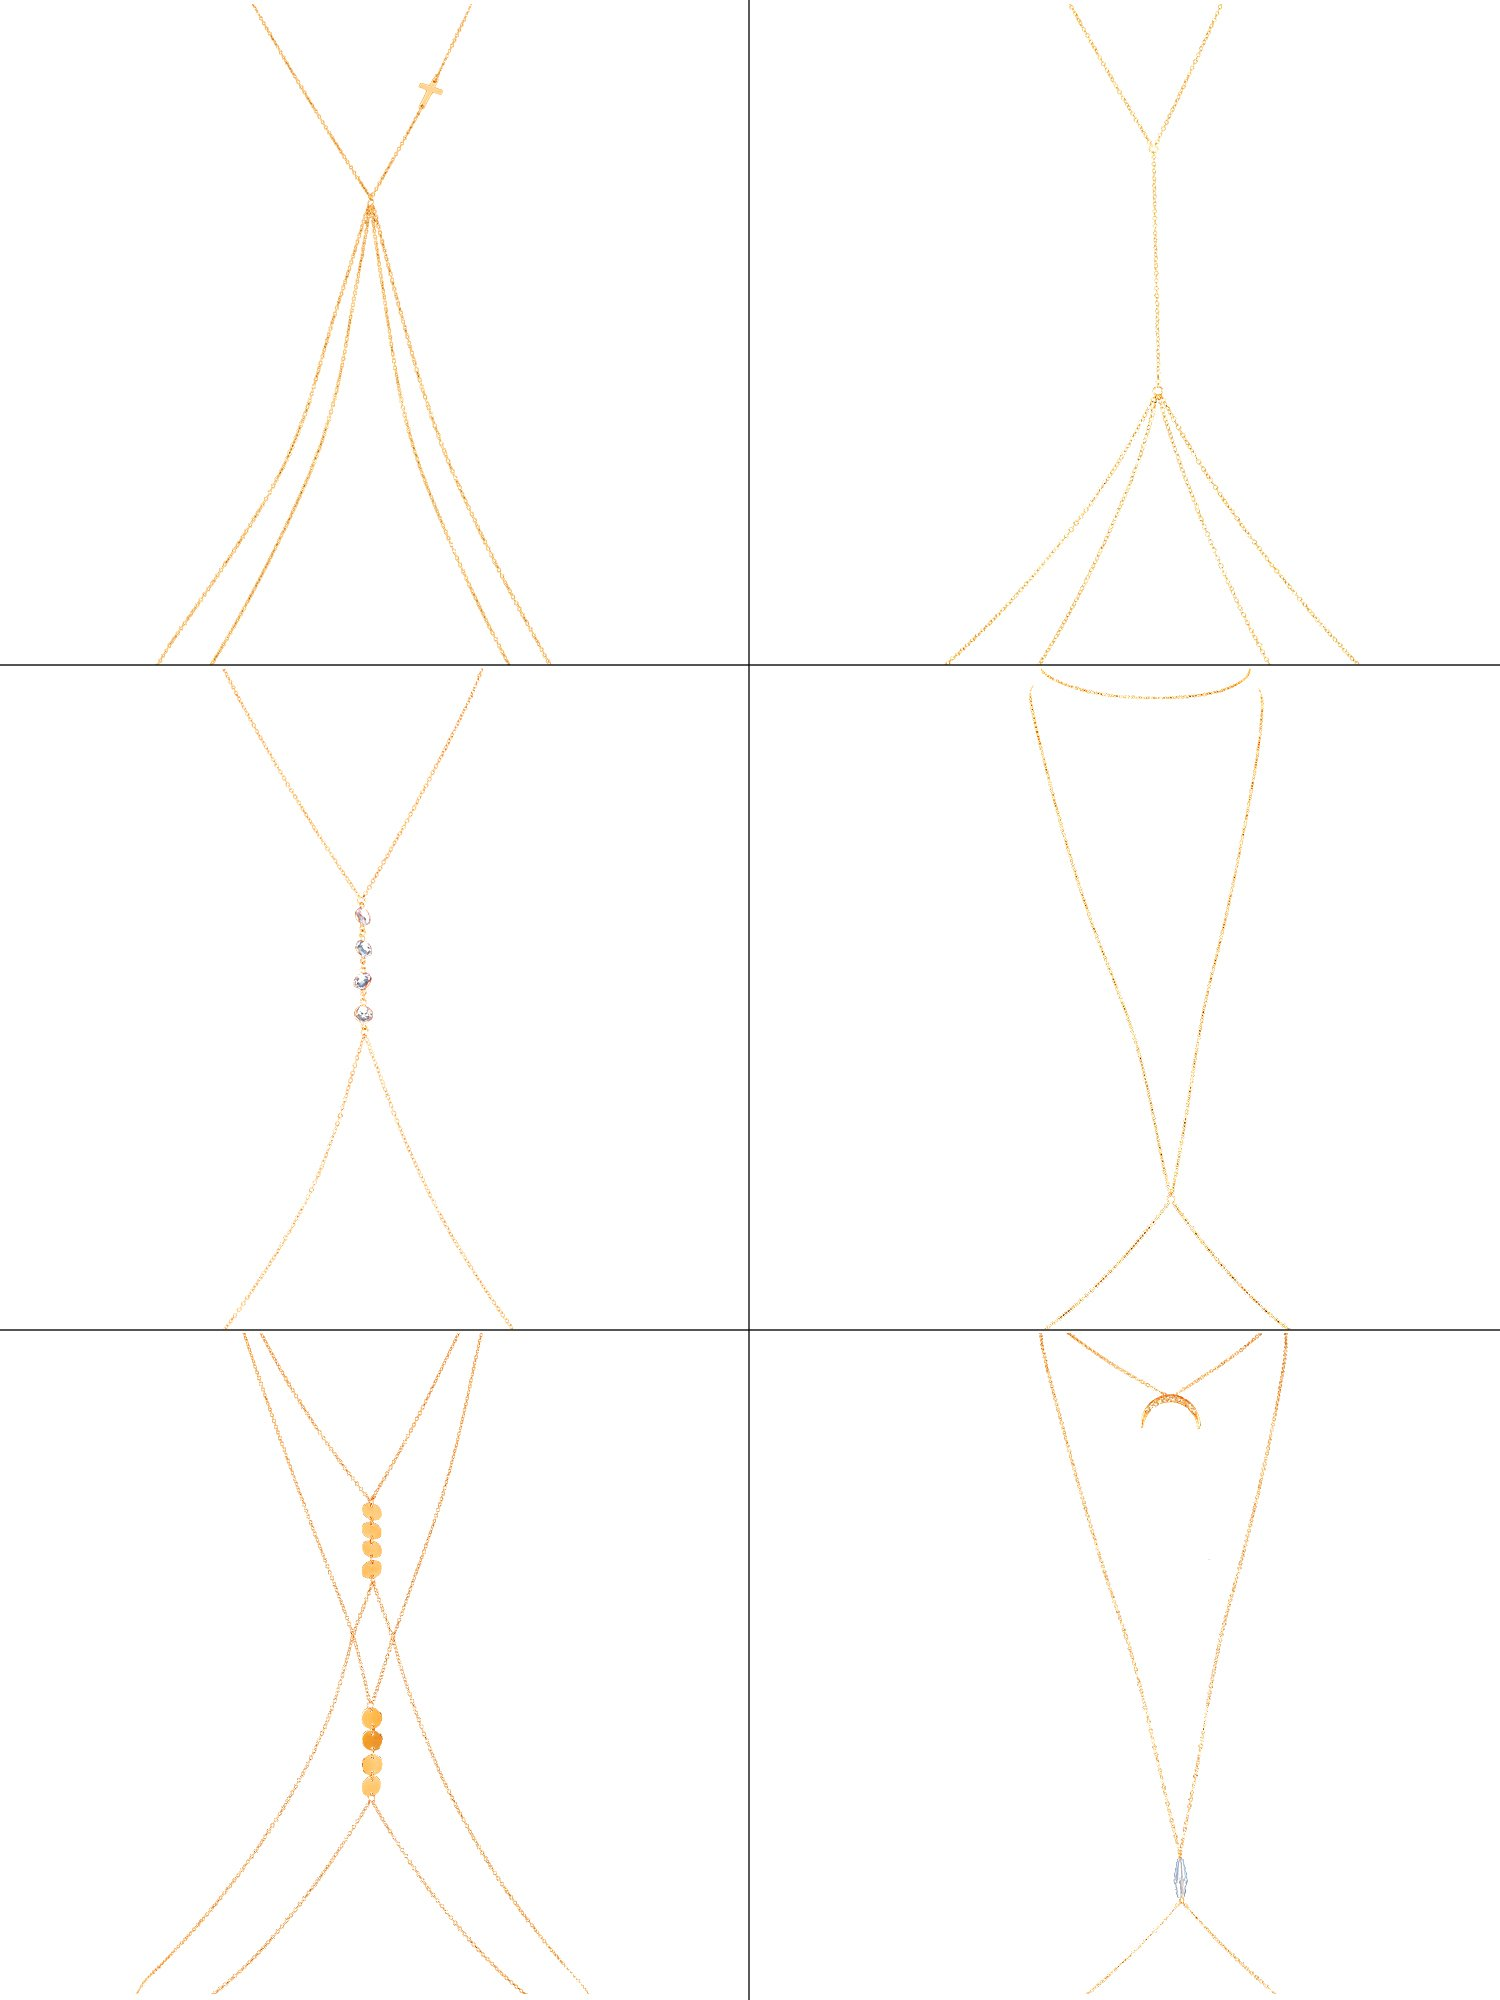 Gejoy 6 Pieces Sexy Gold Body Chains Charm Layered Belly Chain Necklace Bikini Ladies Crossover Necklace Beach Jewelry for Women